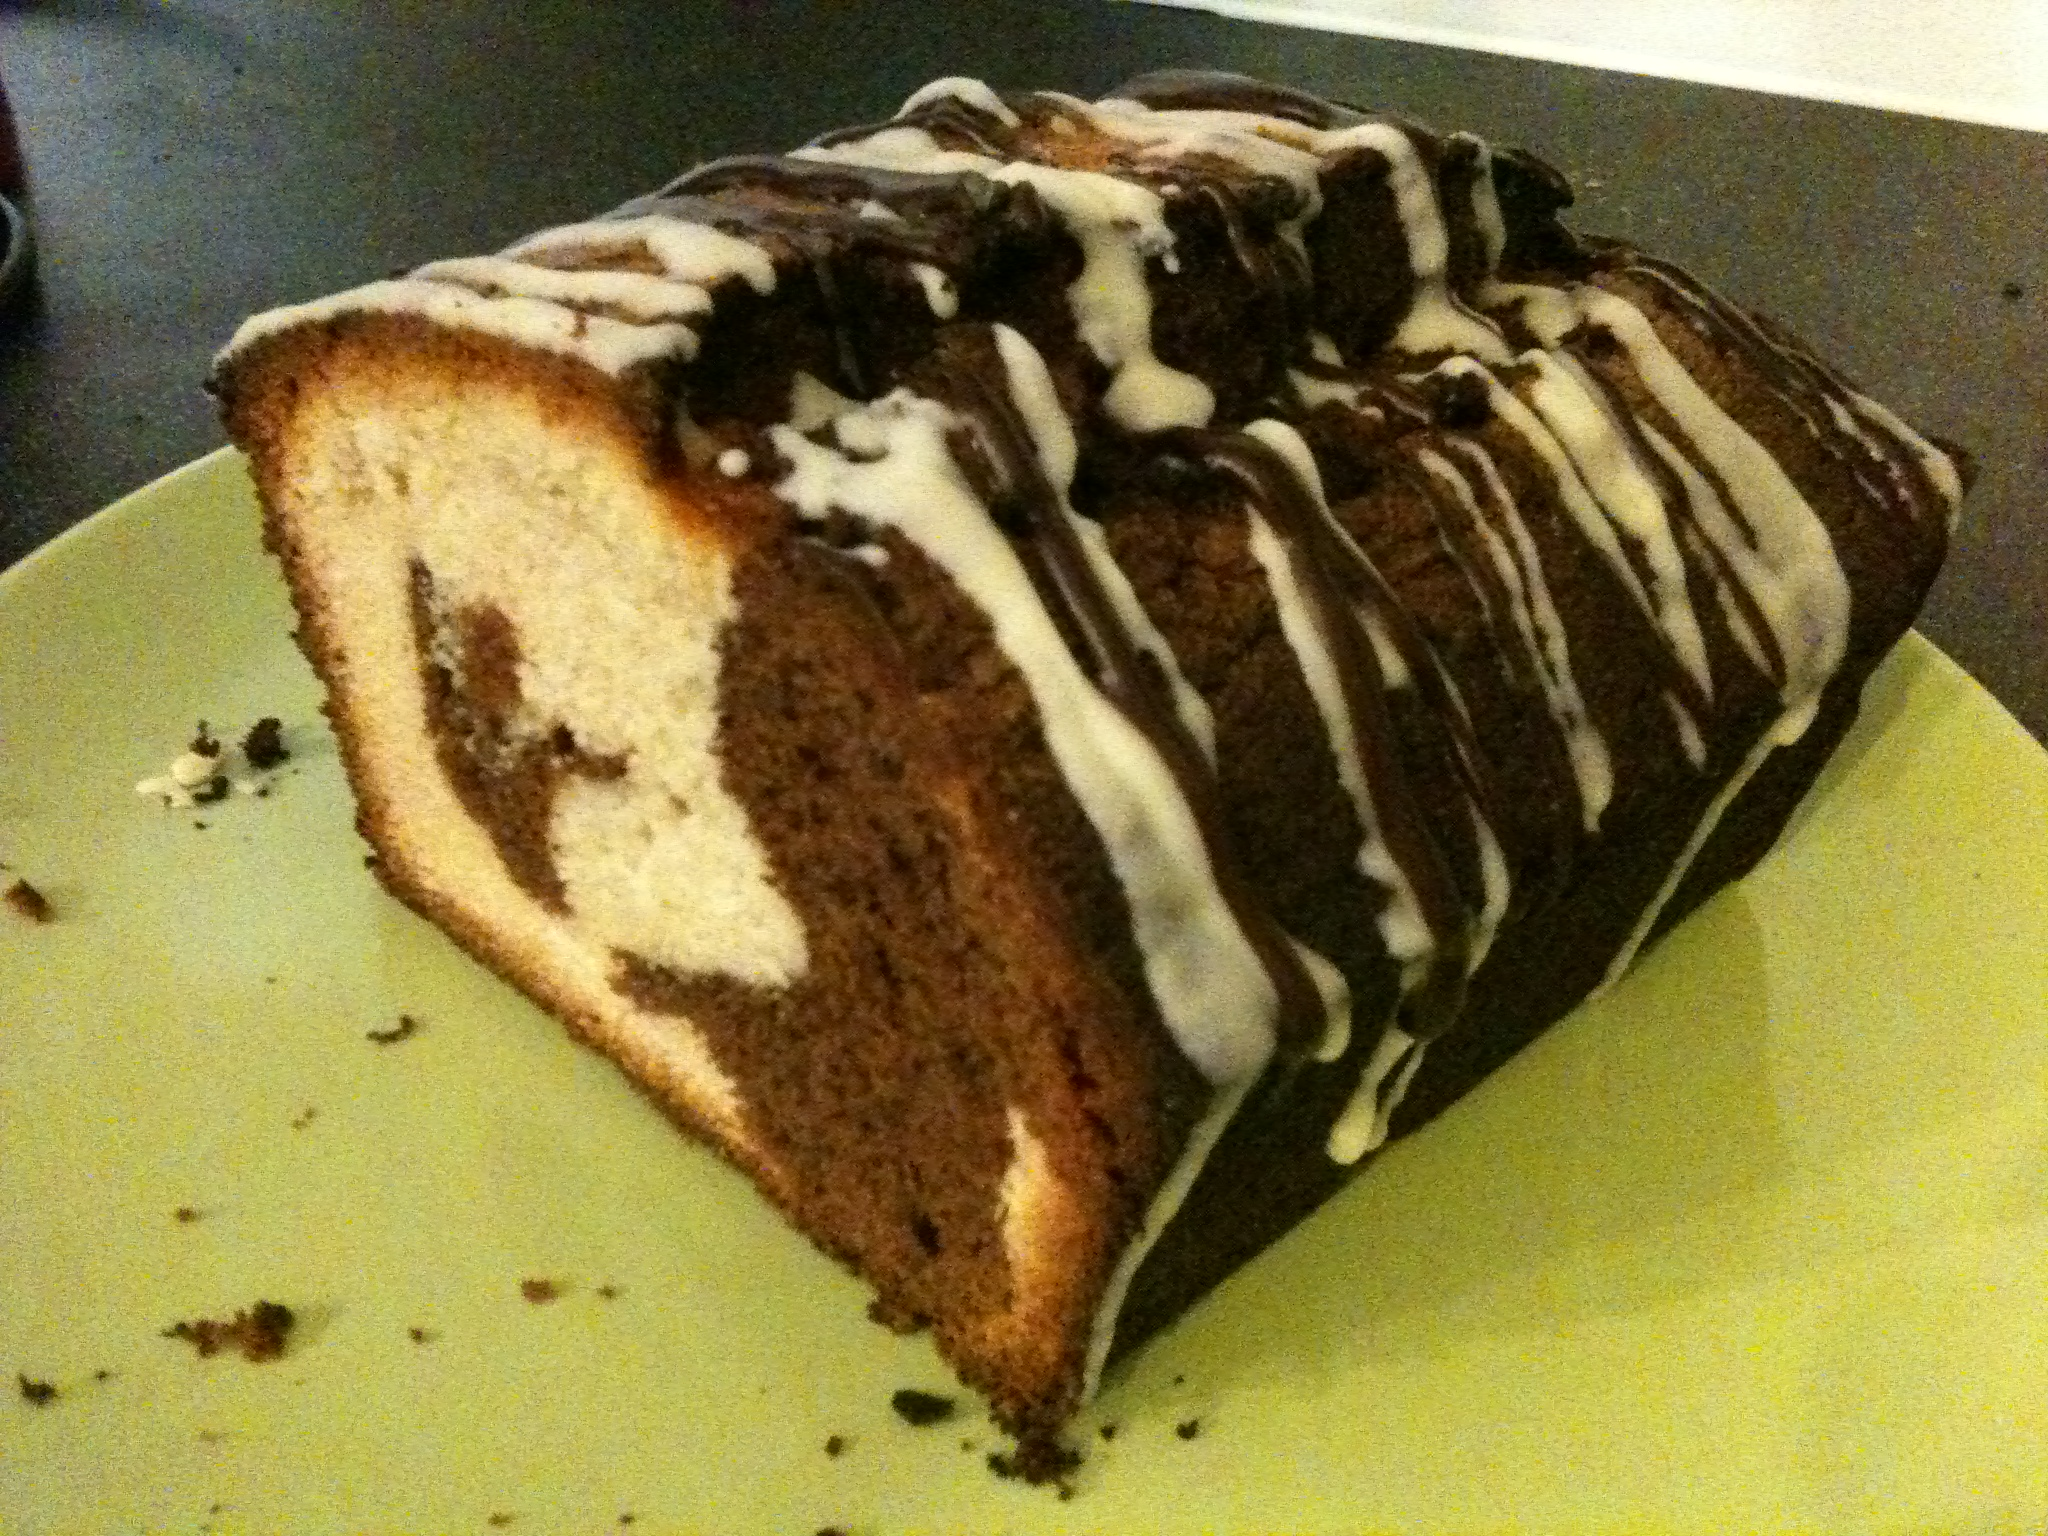 Double-chocolate marble loaf cake